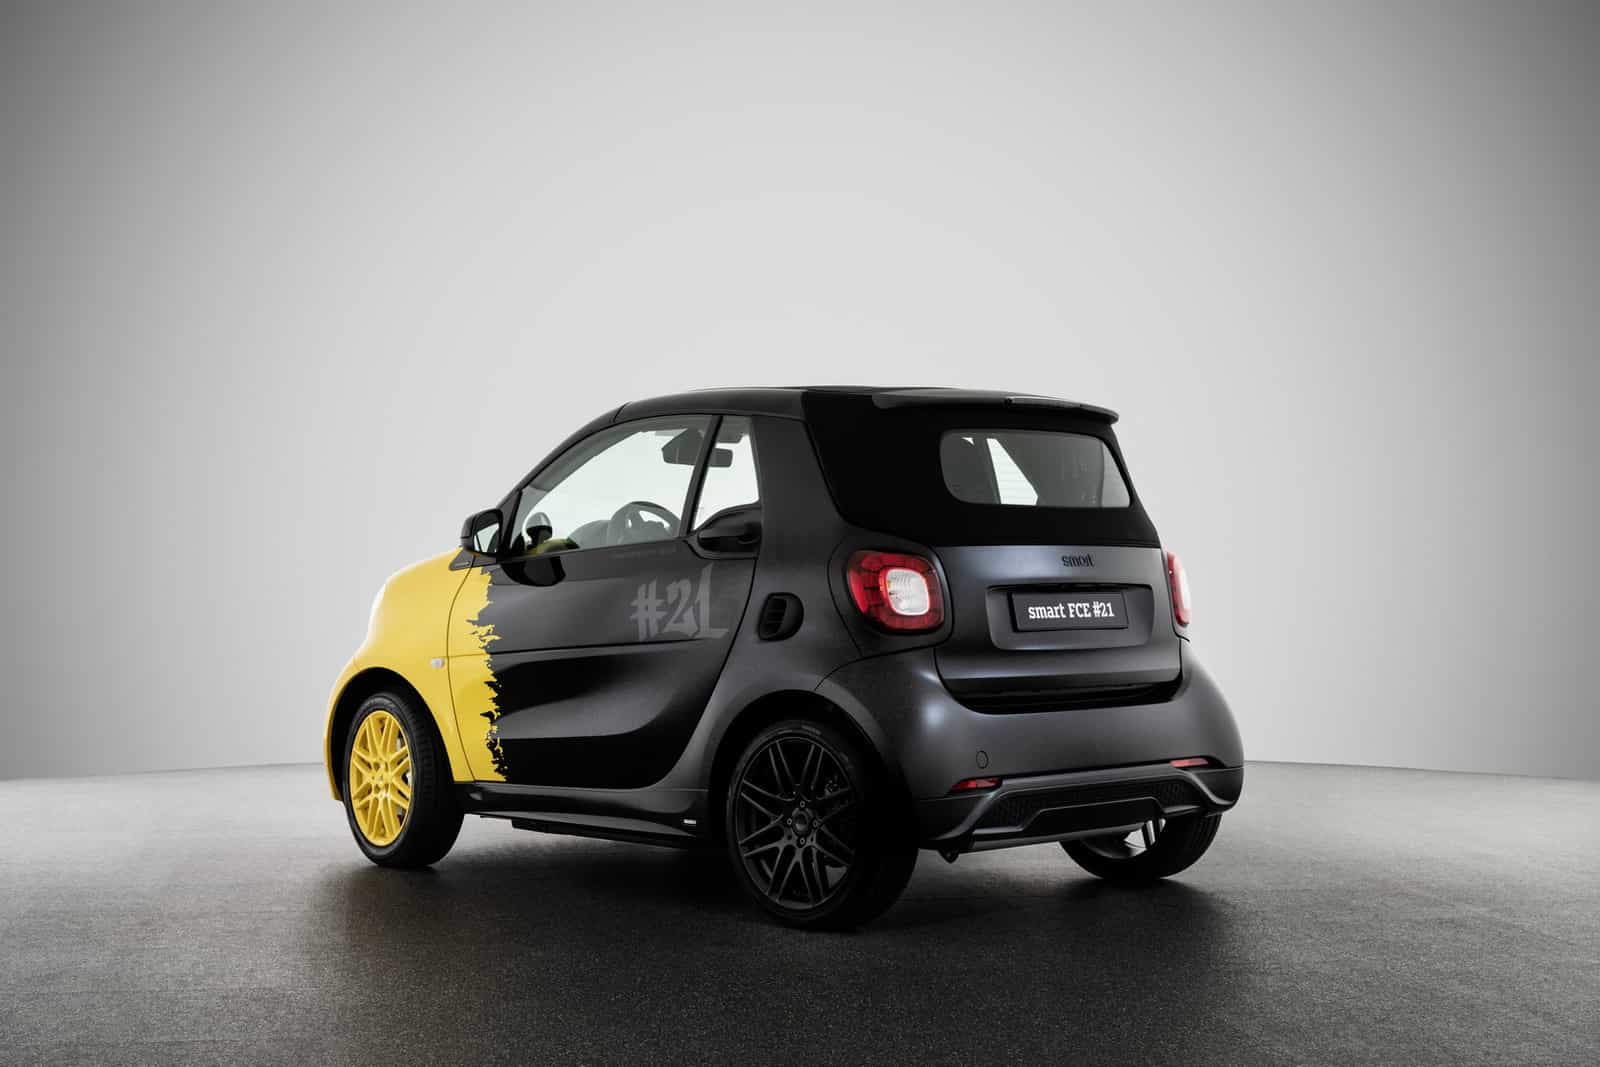 smart fortwo_02